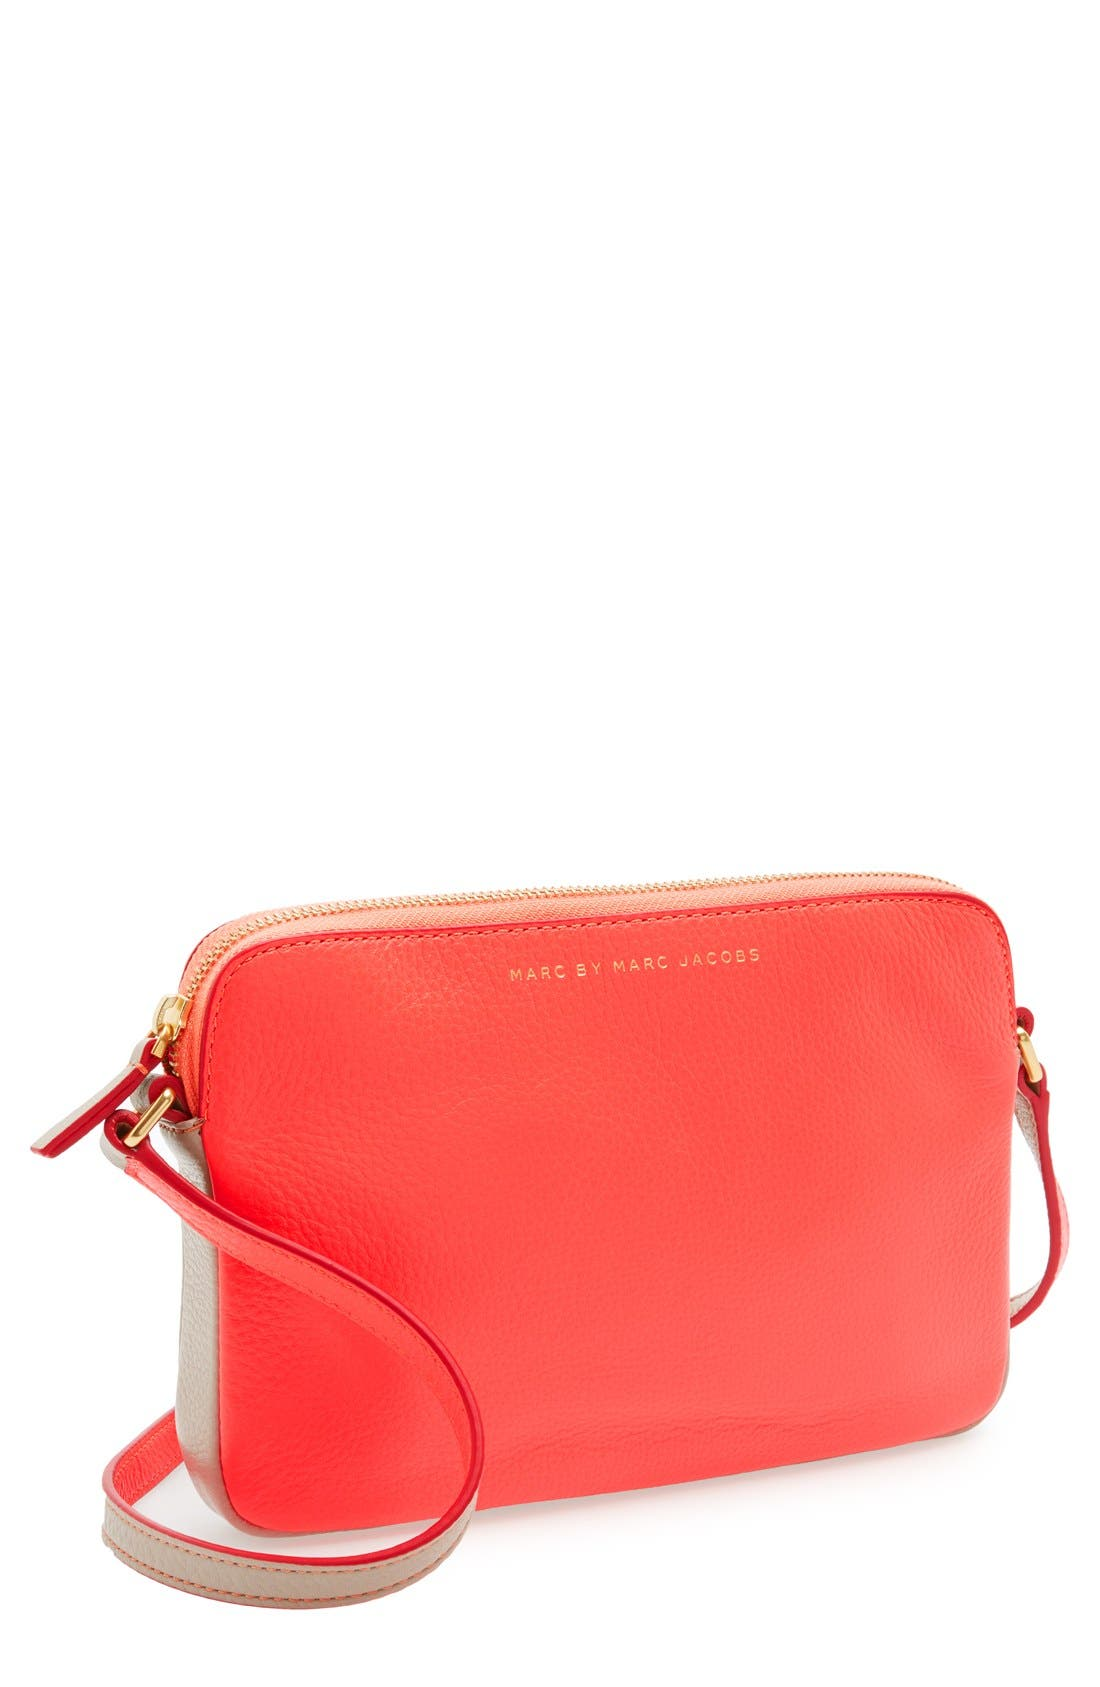 Main Image - MARC BY MARC JACOBS 'Sophisticato - Dani' Leather Crossbody Bag